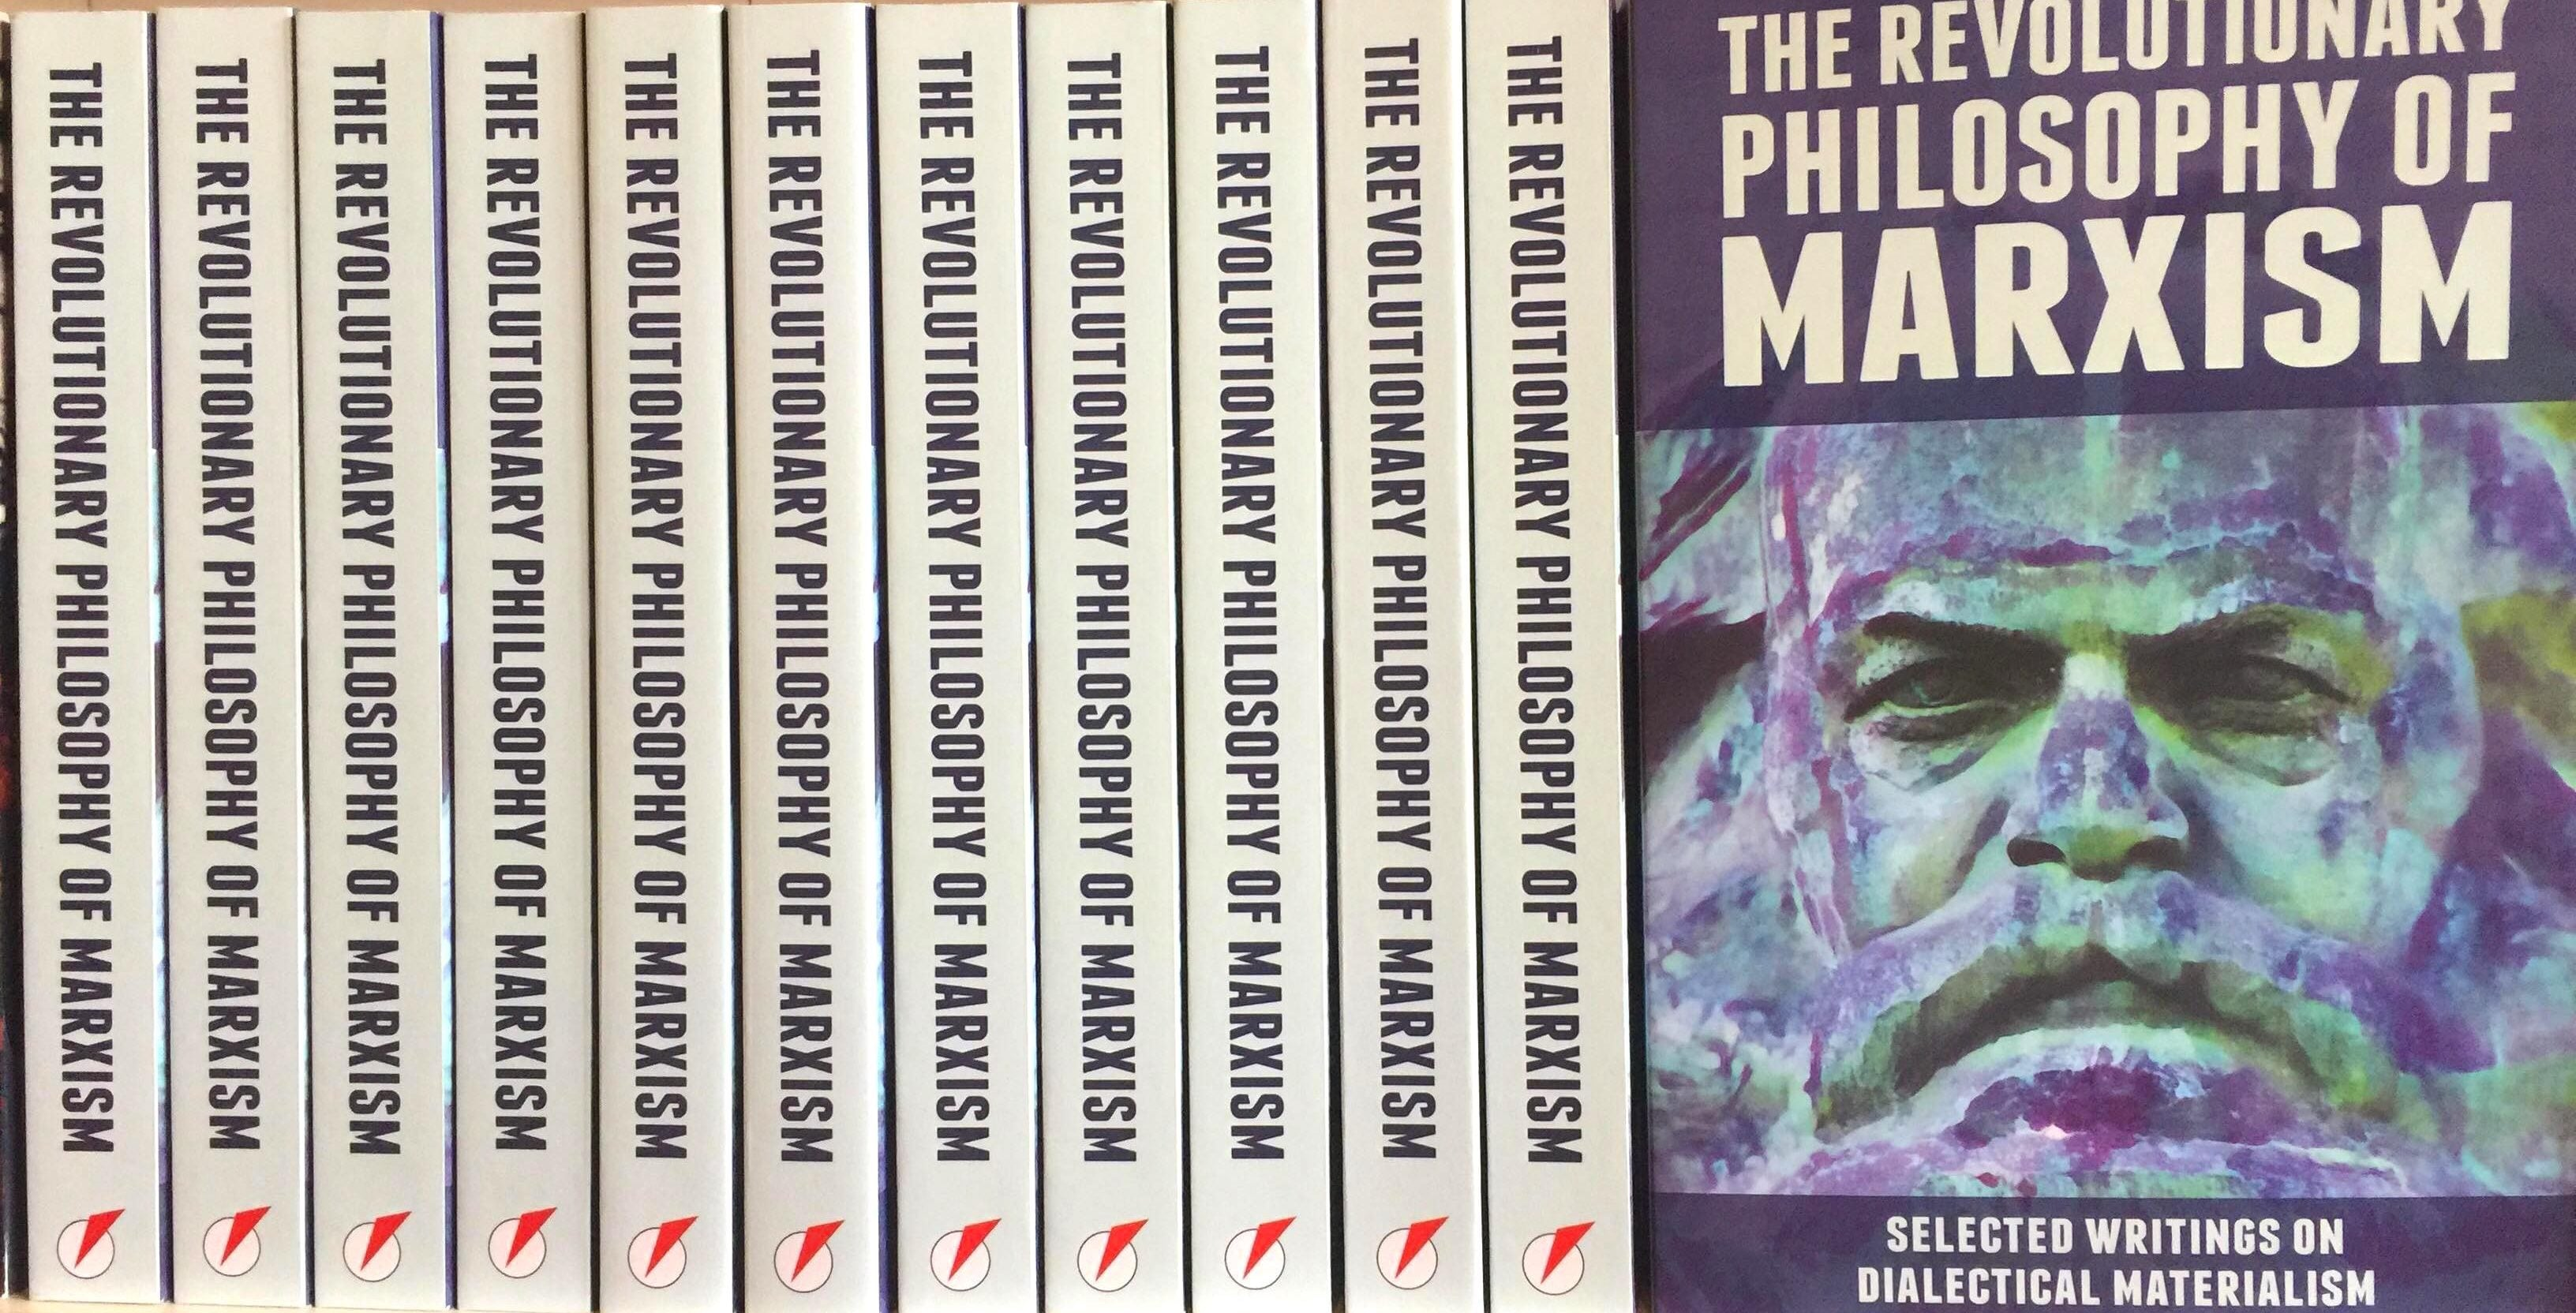 Marxist Books The Revolutionary Philosophy of Marxism